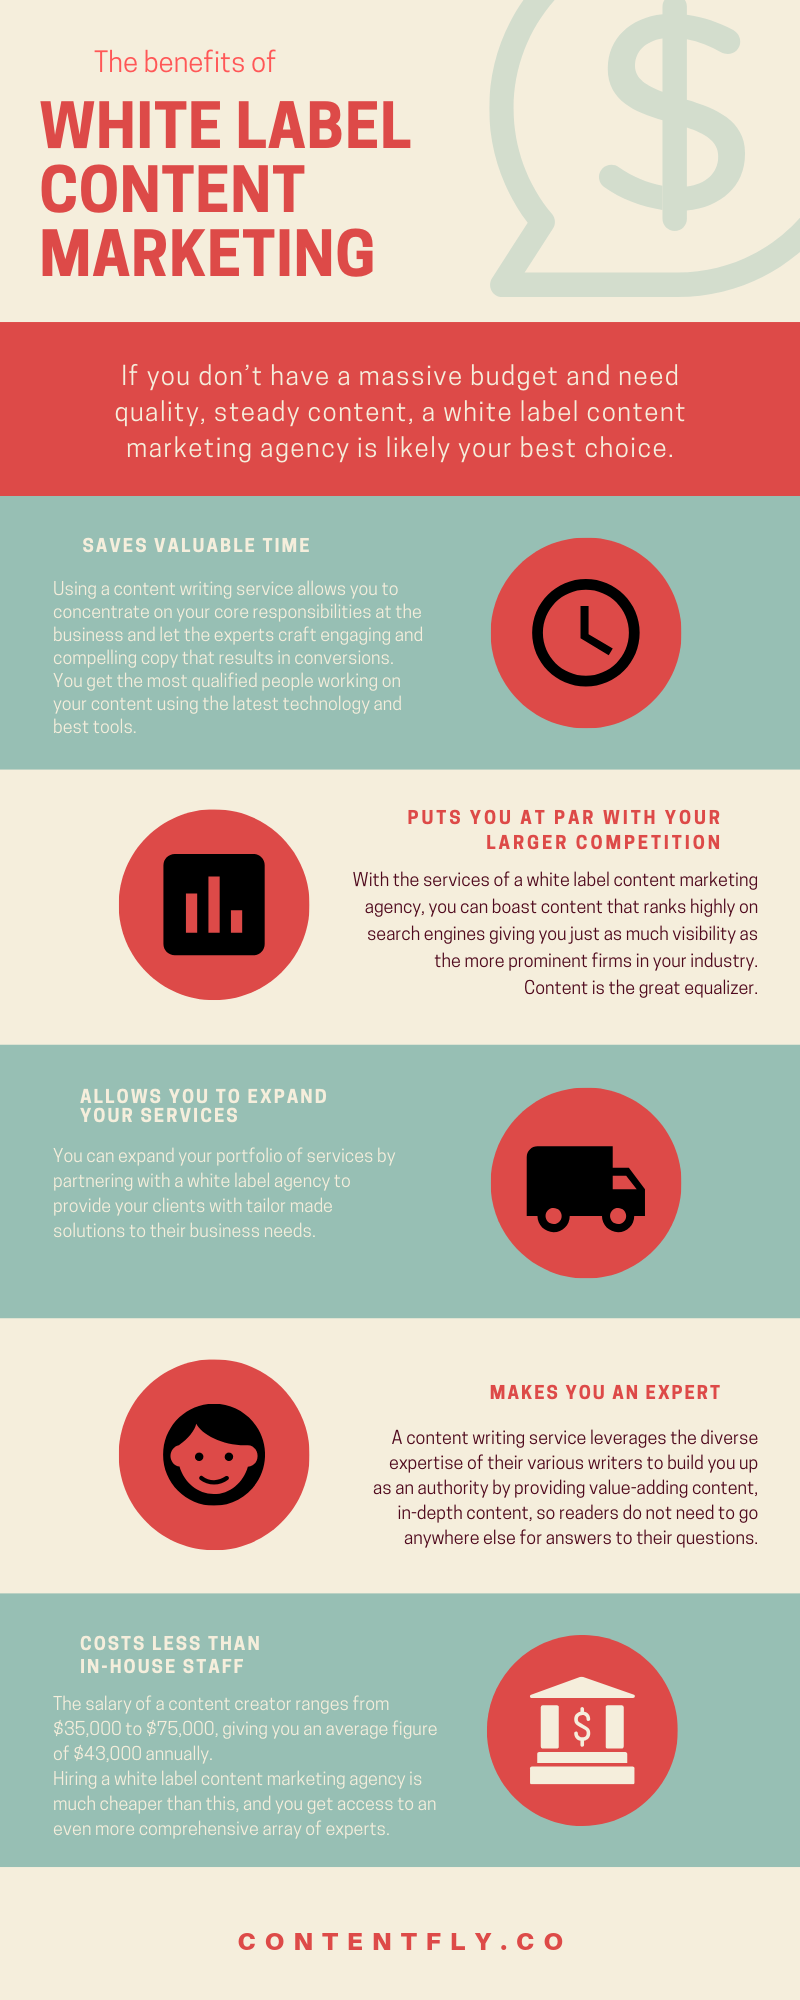 The benefits of white label content marketing - infographic